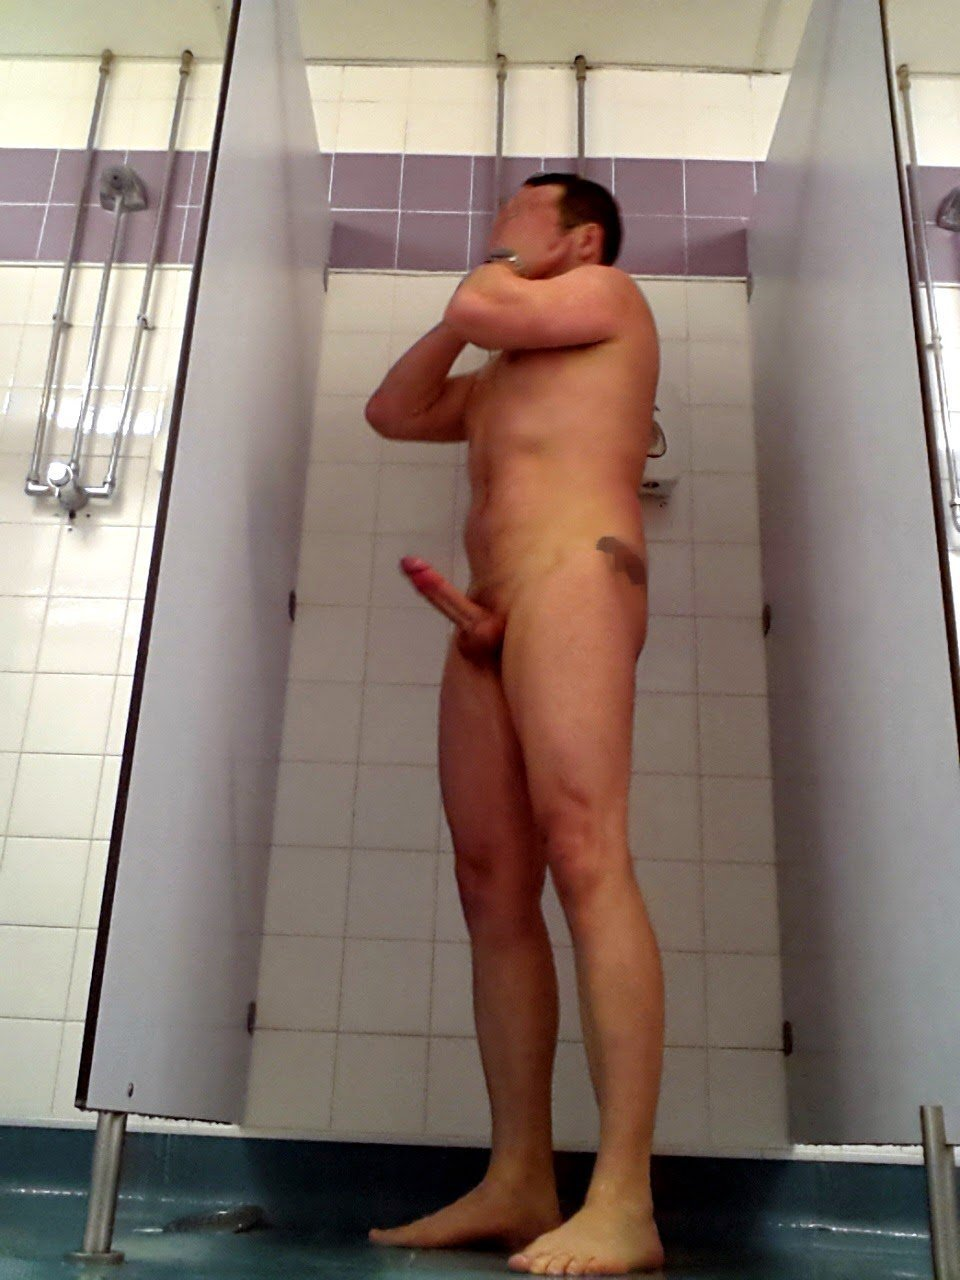 Hard Gay Men In The Shower